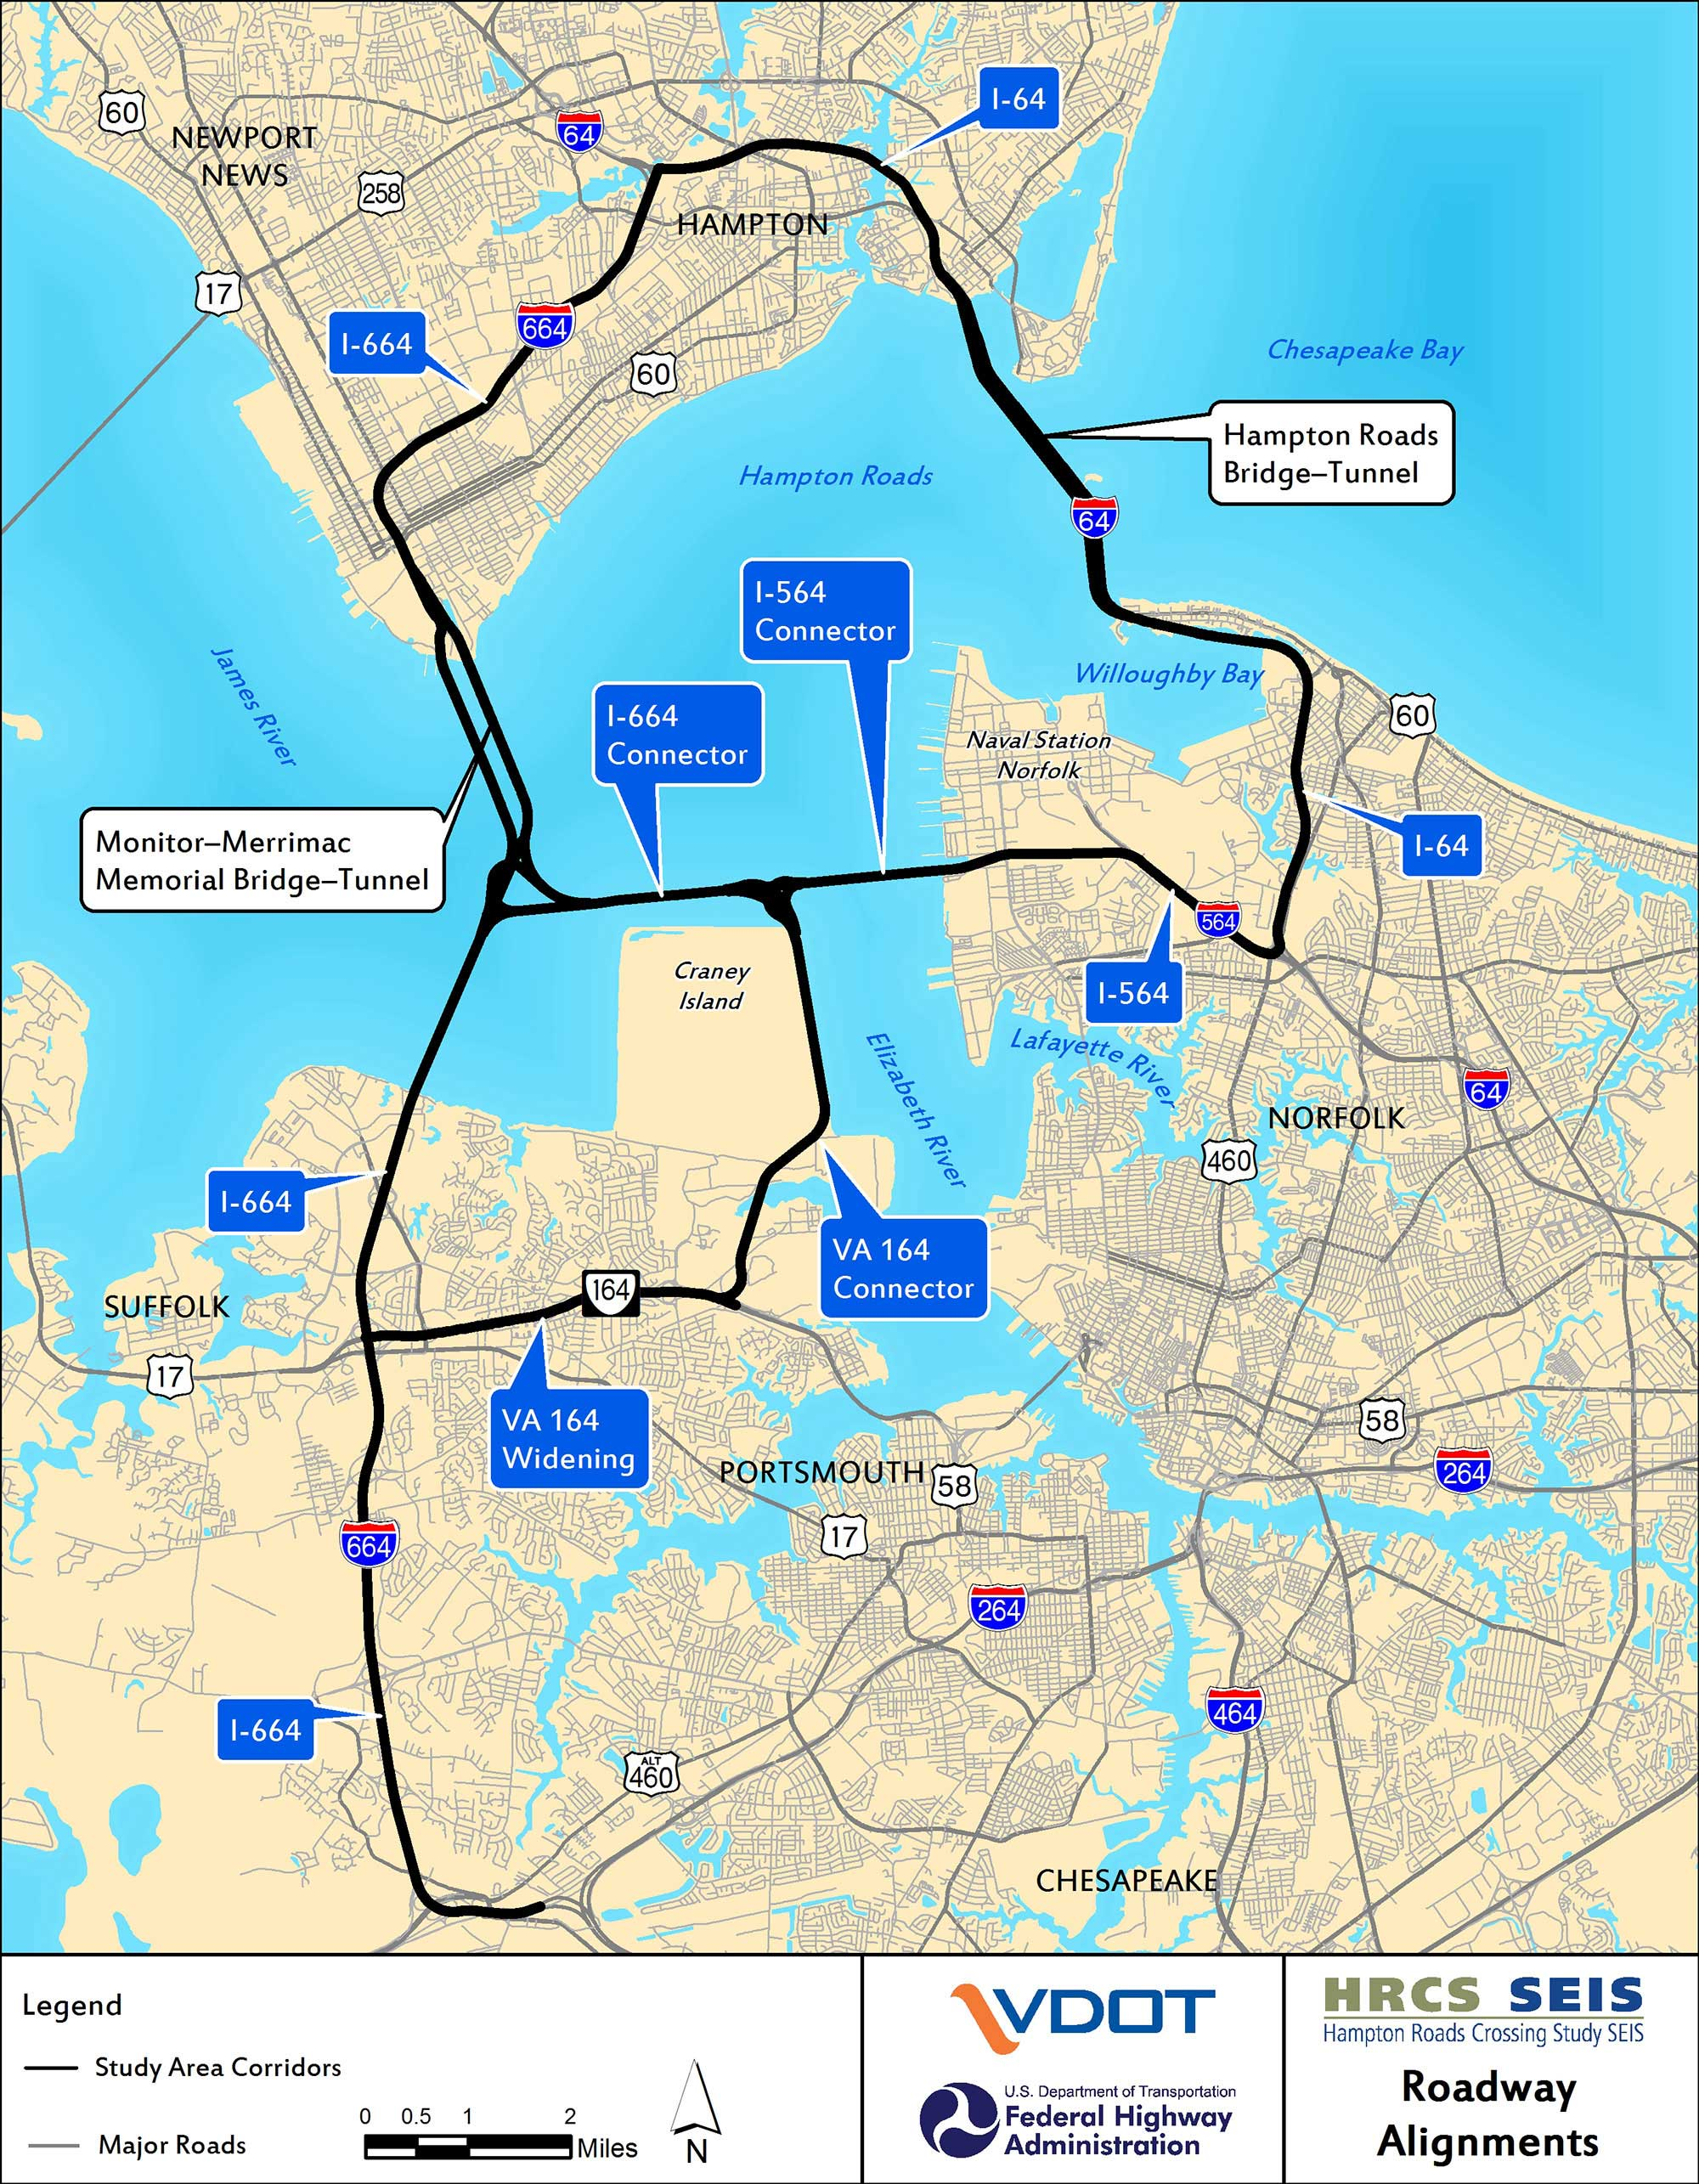 VDOT Hampton Roads Crossing Study Supplemental Environmental Impact Statement